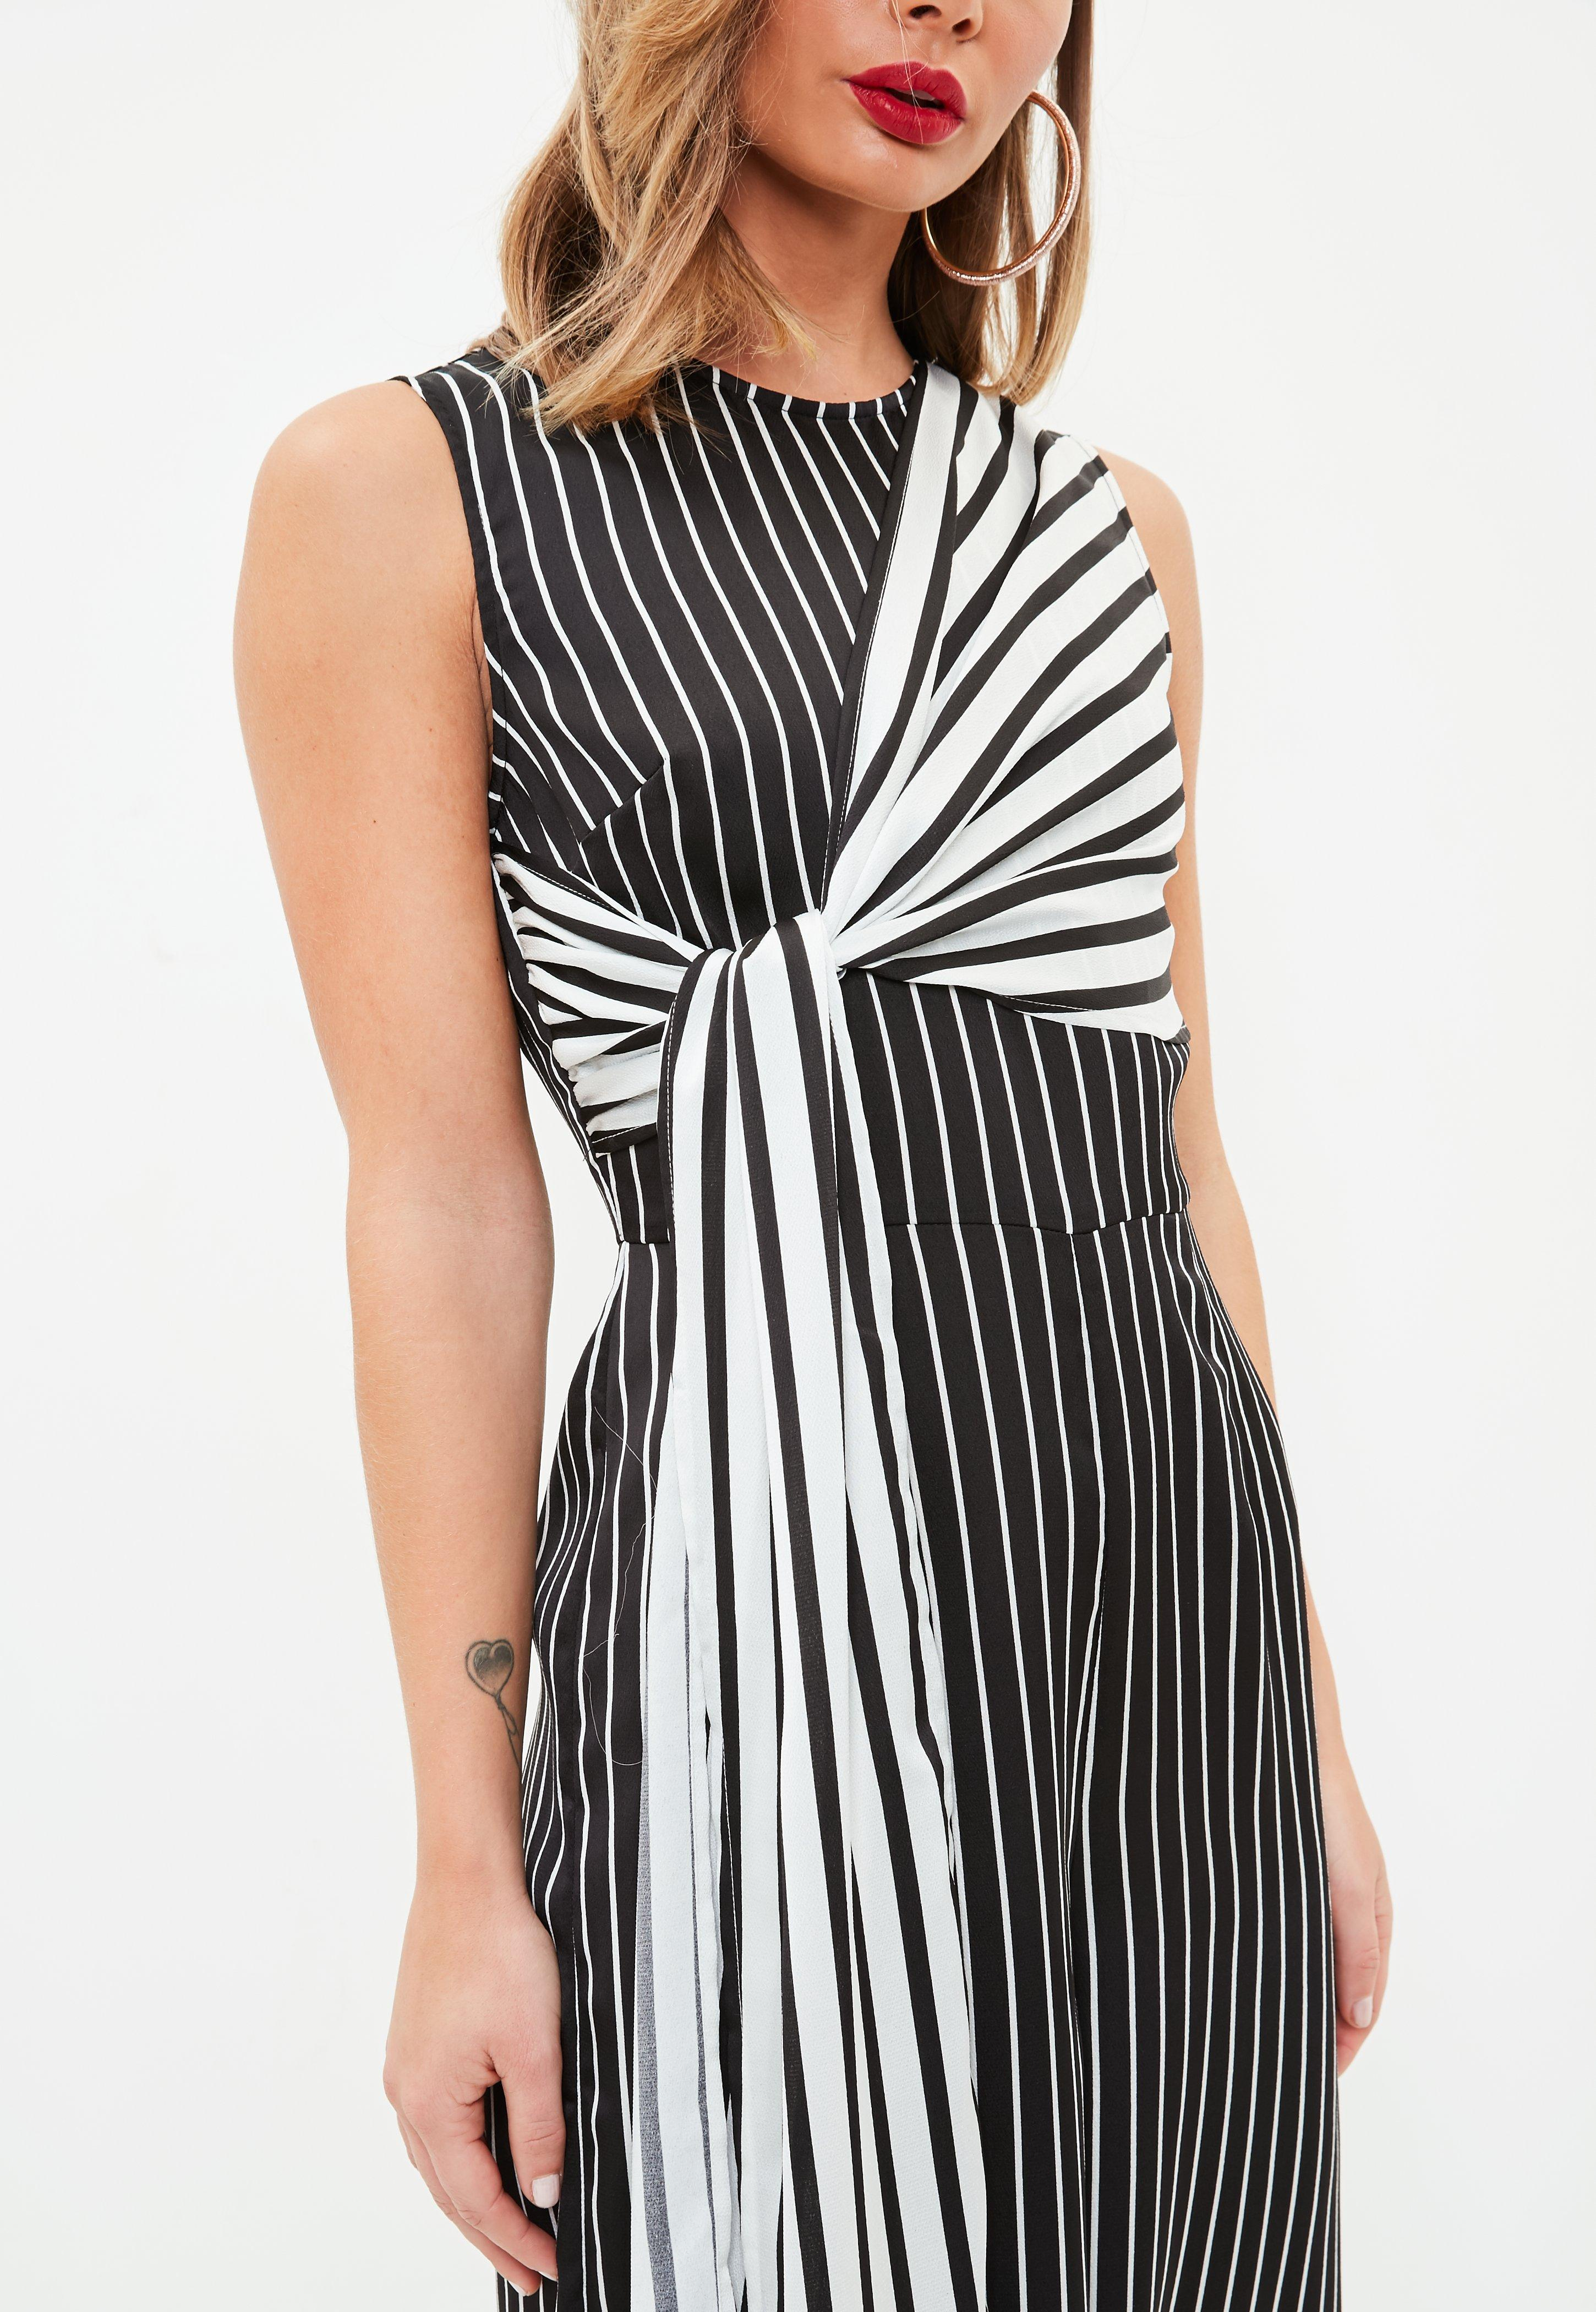 9c5ed7d1c8f4 Lyst - Missguided Black And White Stripe Culottes Jumpsuit in Black